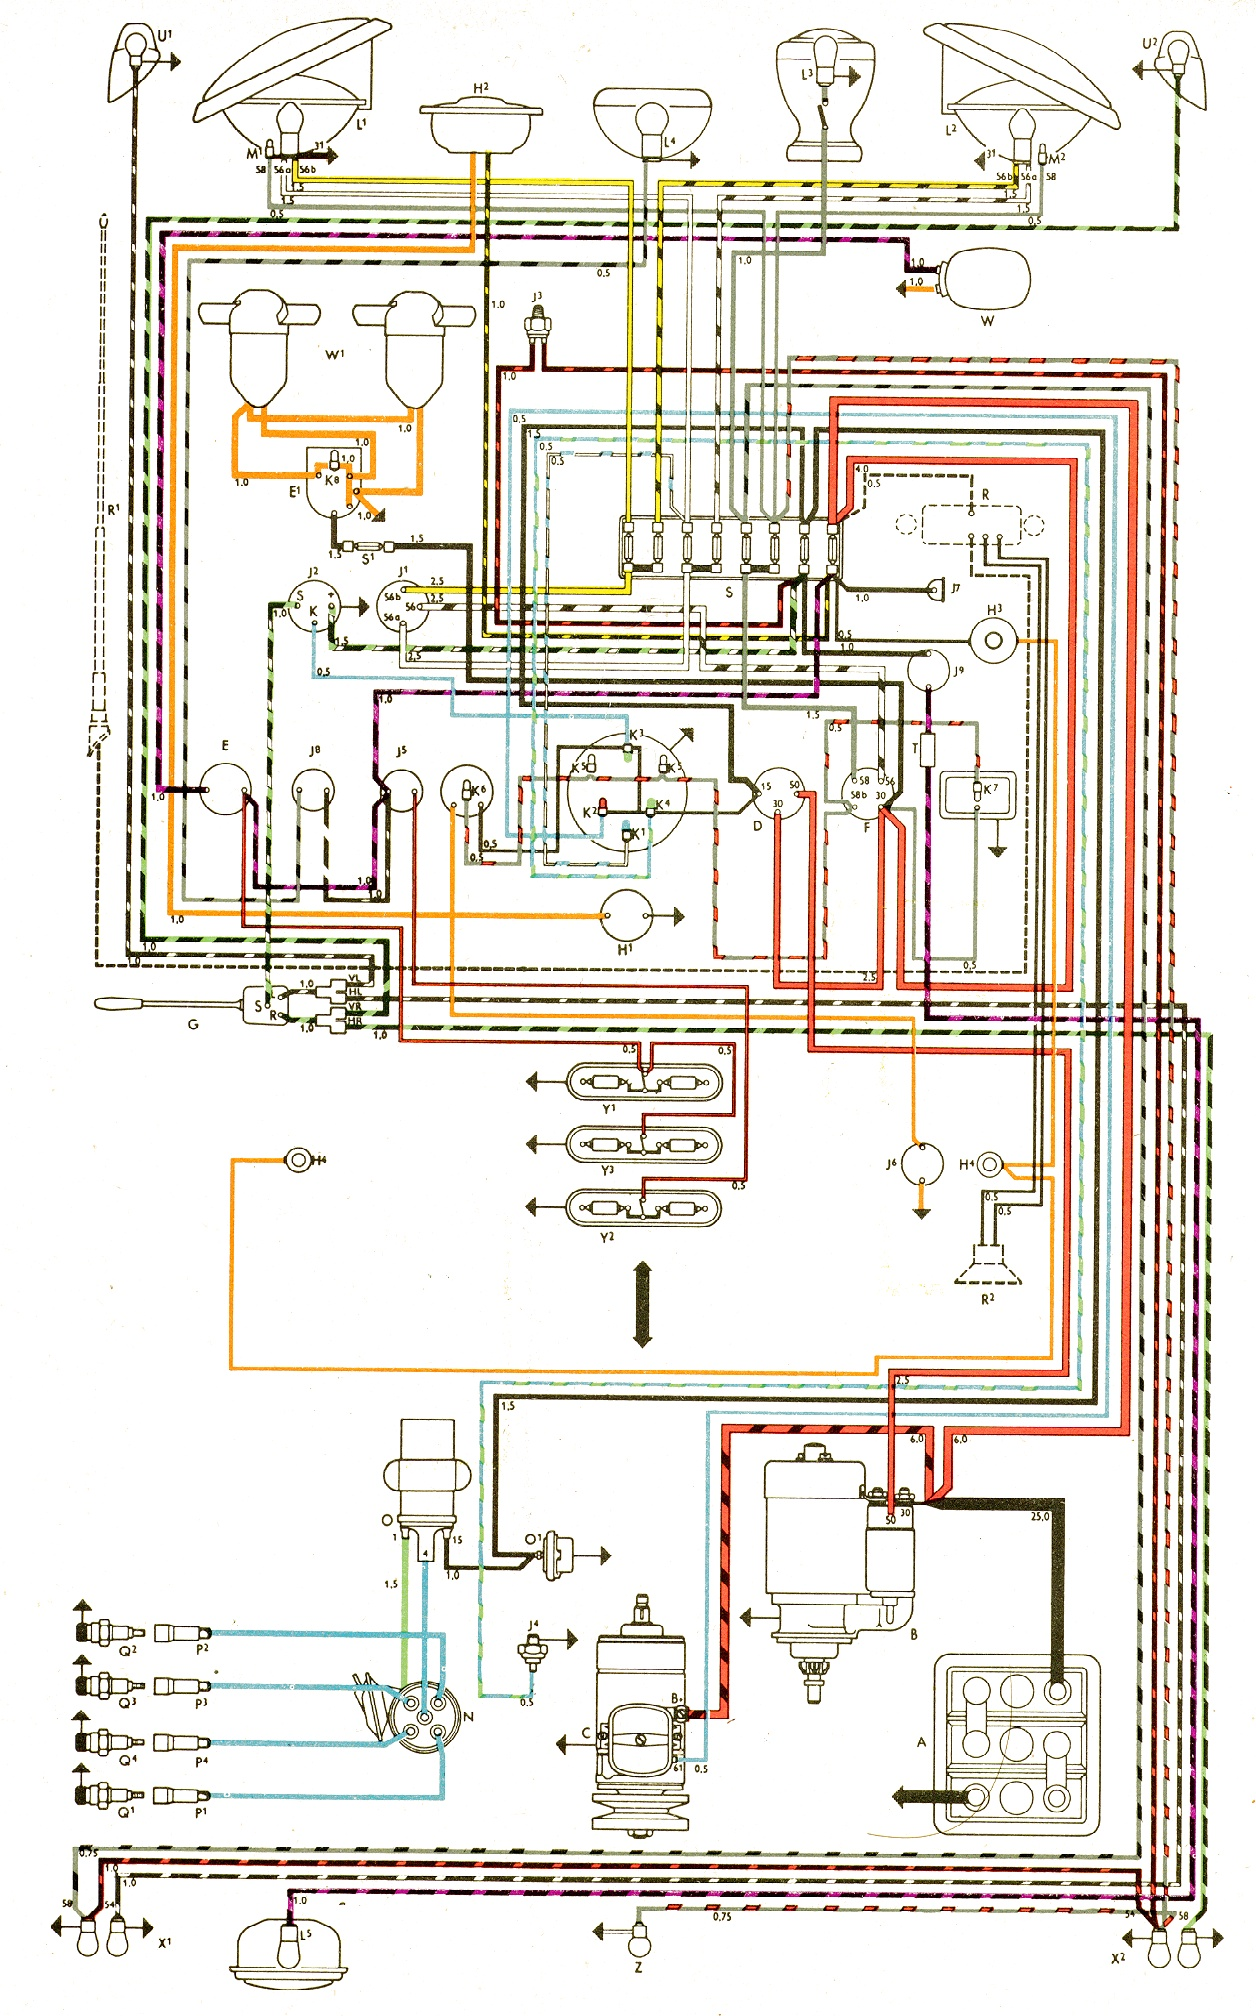 bus 62 vintagebus com vw bus (and other) wiring diagrams vw engine wiring diagram at arjmand.co